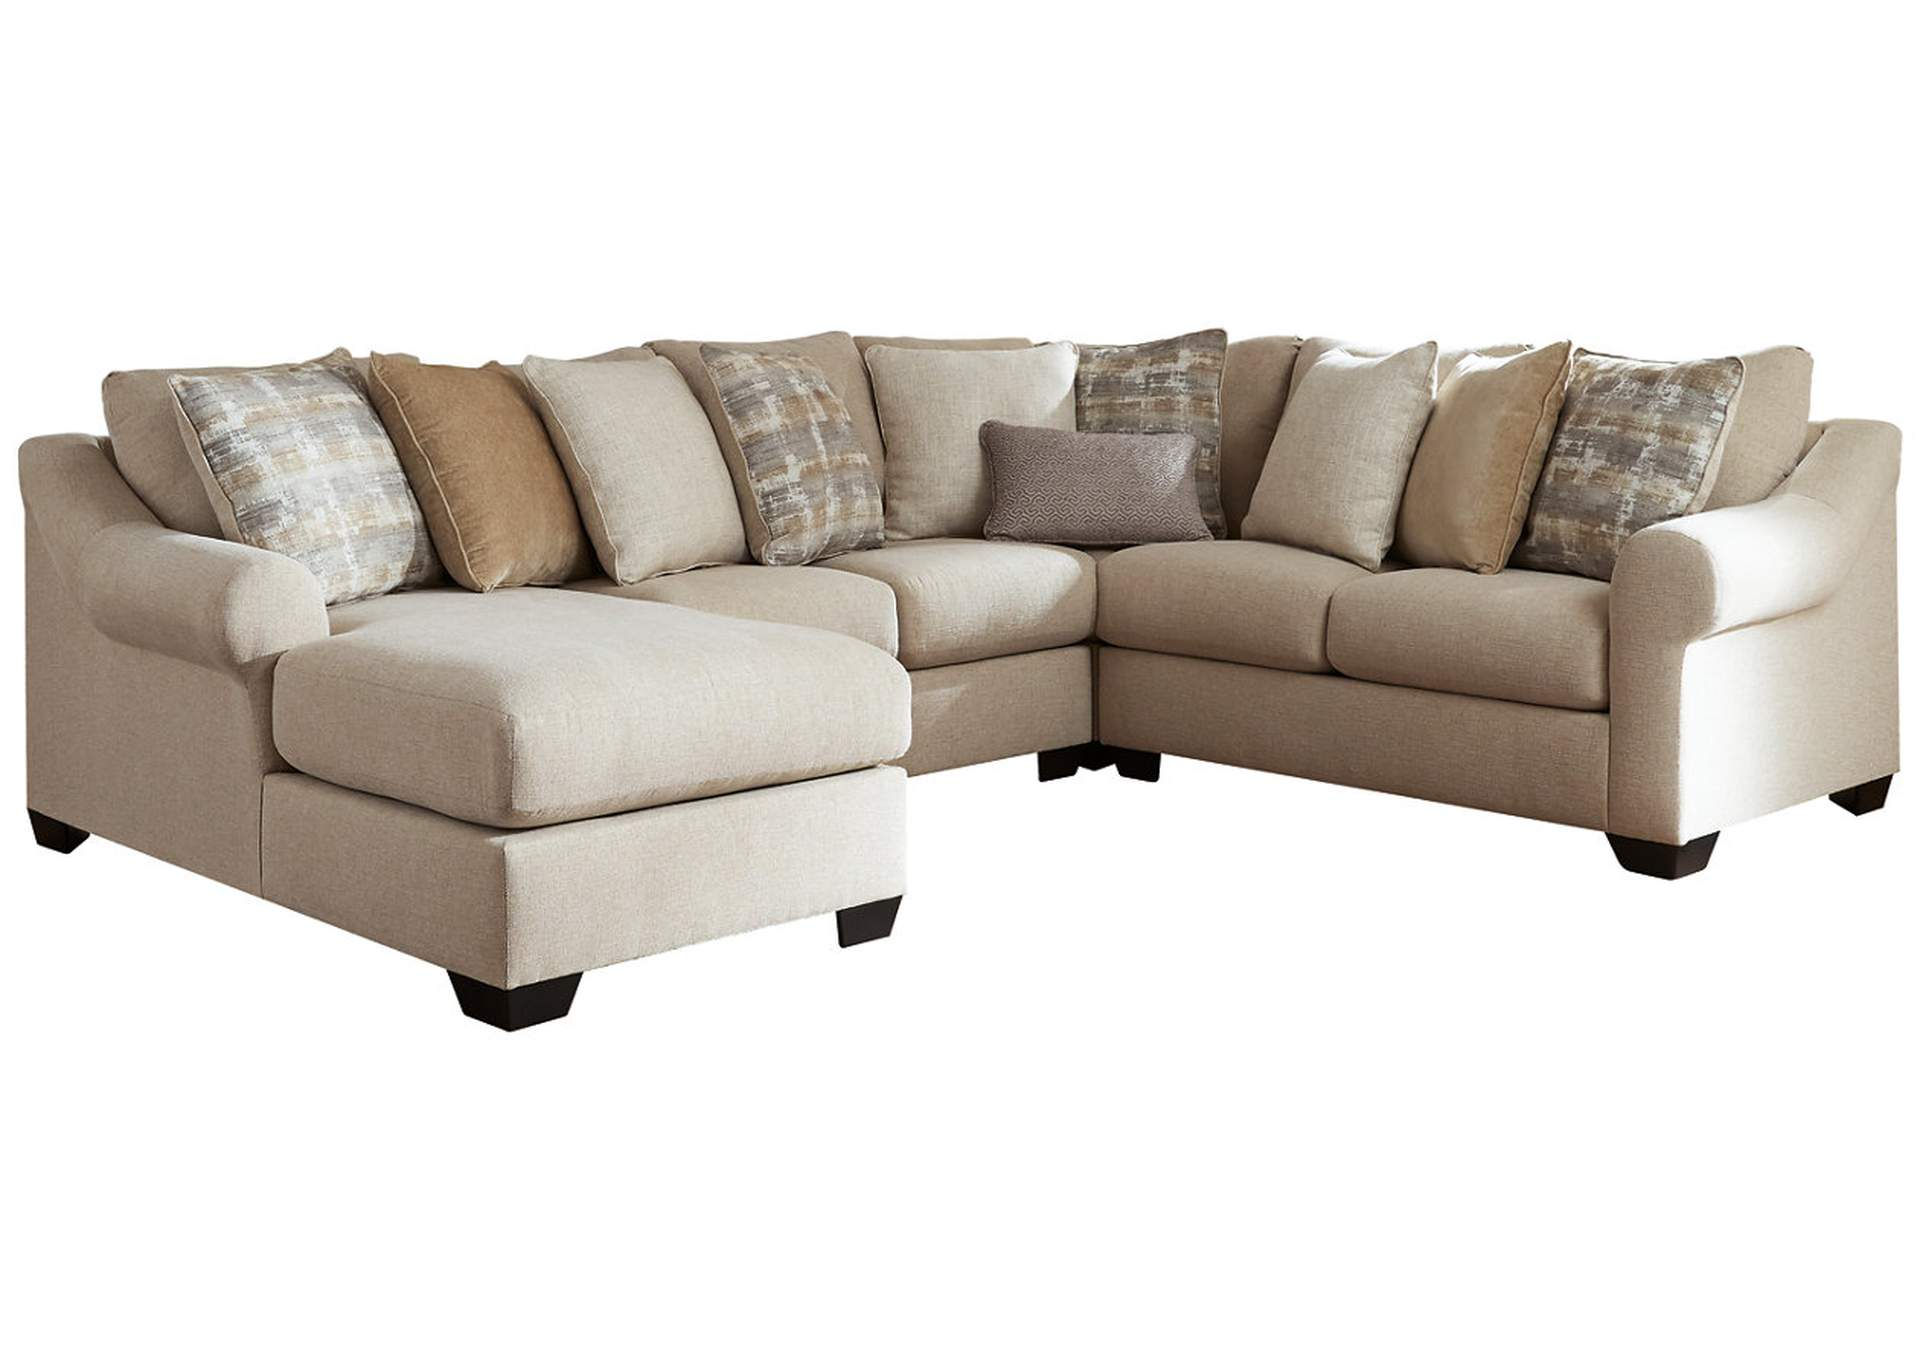 Ingleside 4-Piece Sectional with Chaise,Benchcraft